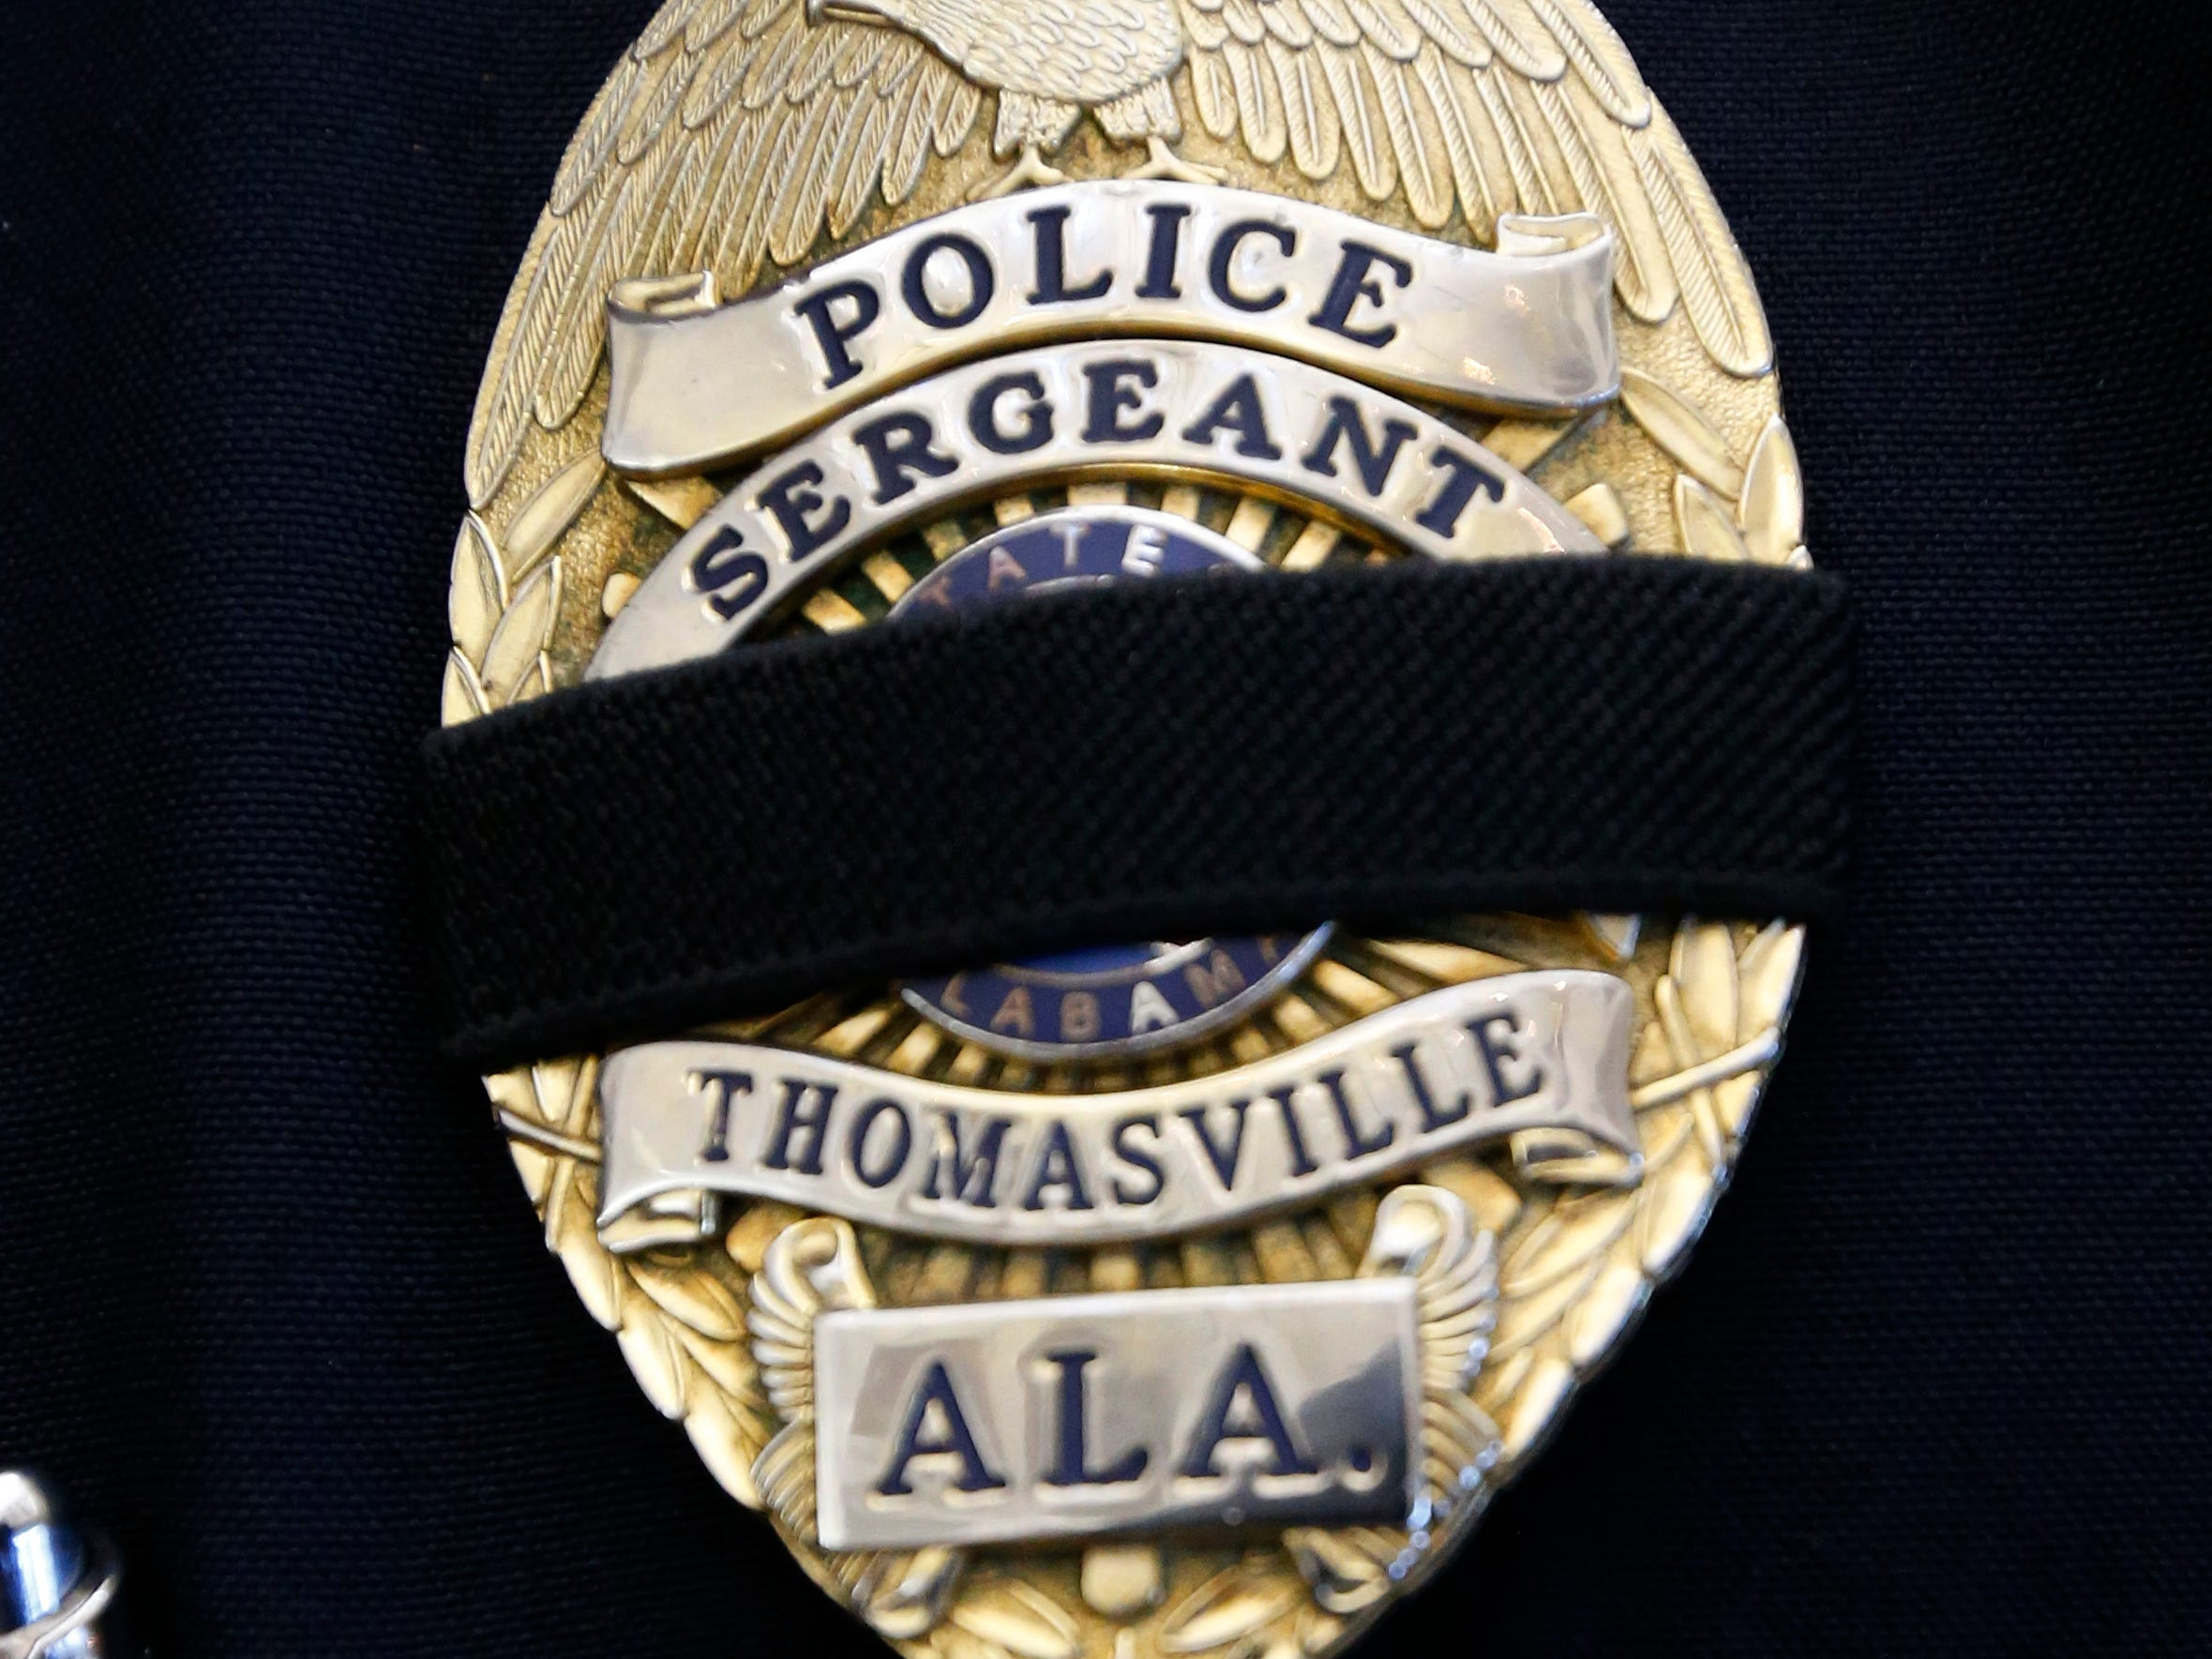 Visiting law enforcement officers, such as Lt. Rusty Hardeman, unseen, of the Mobile, Ala., Police Department, wear a black band on his badge as acknowledgment of a fallen officer such as the case of Biloxi, Miss., police officer Robert S. McKeithen, at his funeral service at the First Baptist Church of Biloxi, Monday, May 13, 2019.